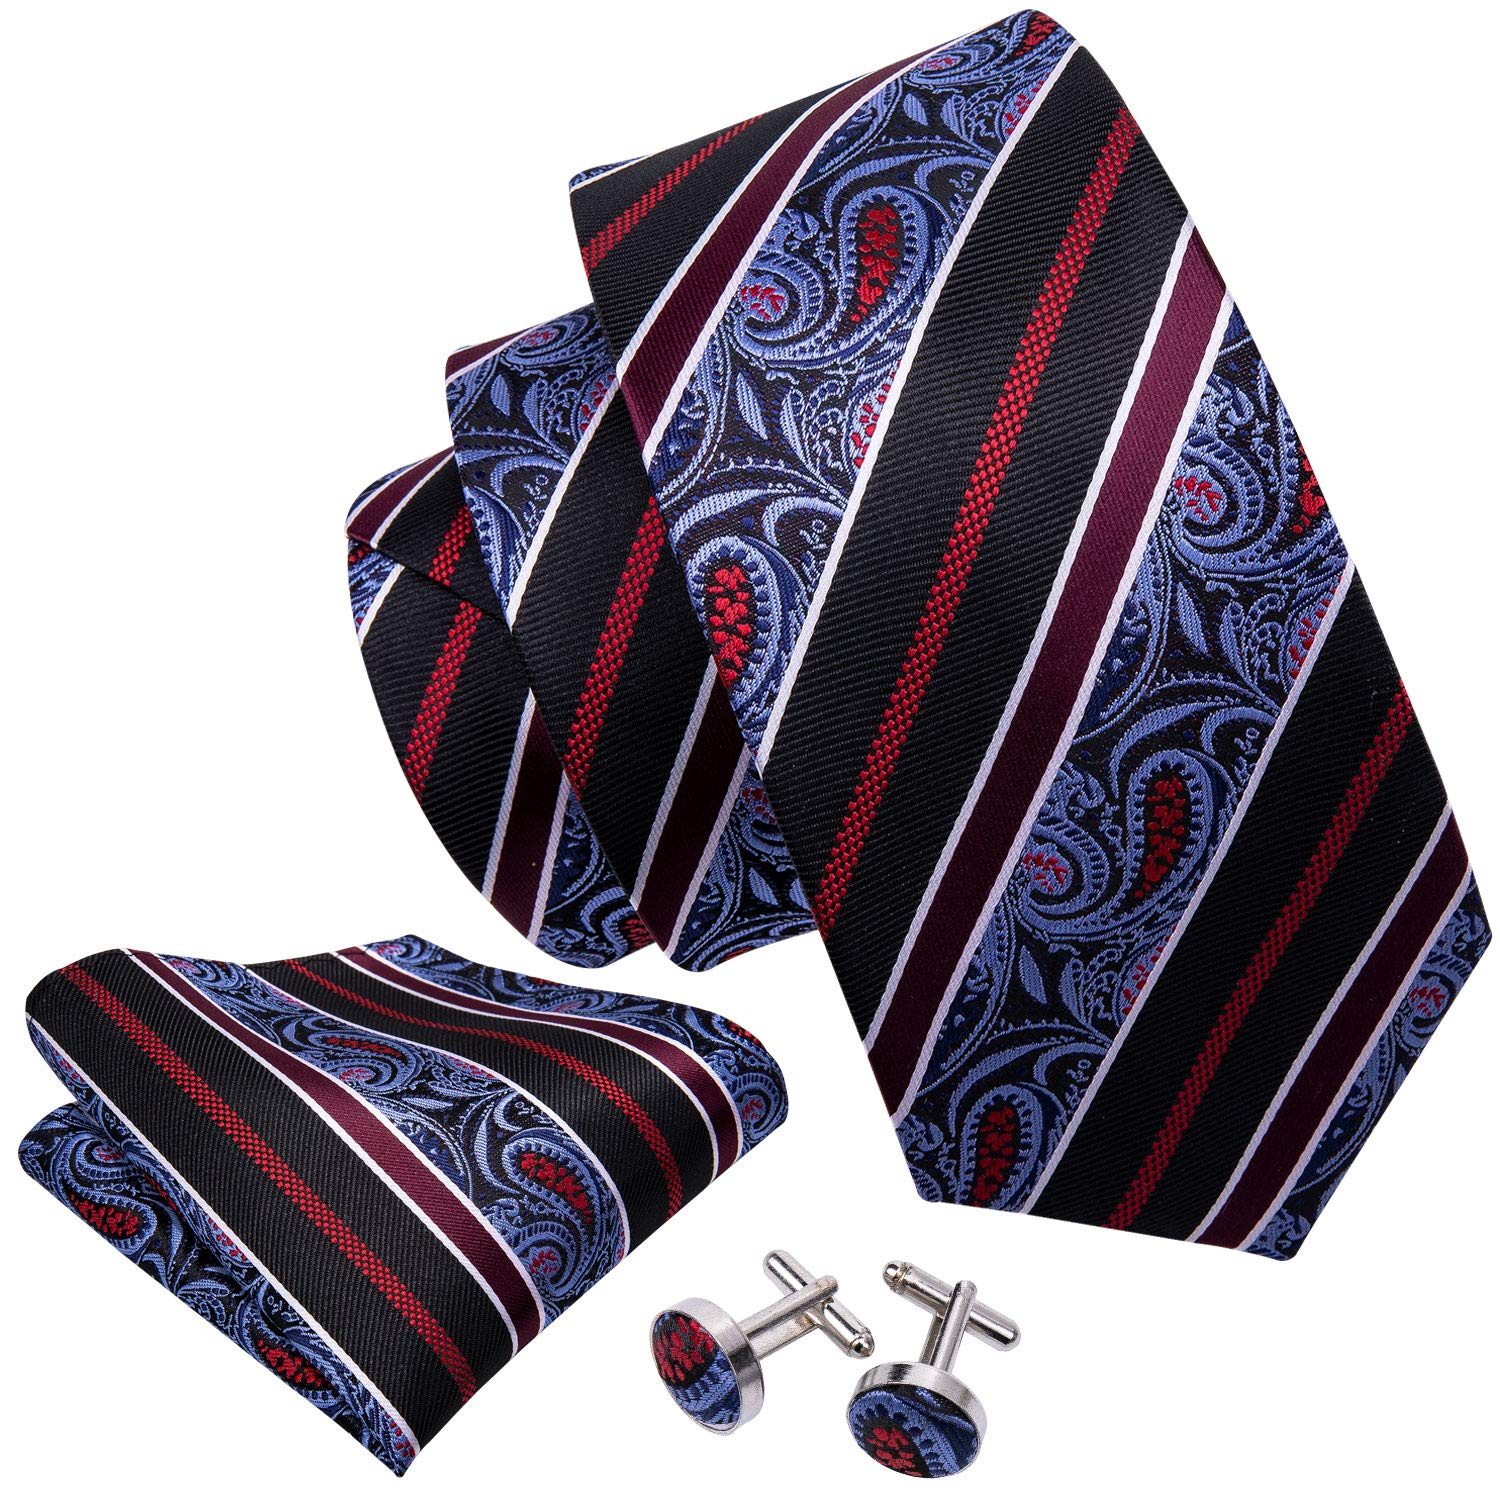 4bea1b1ab0de Wang Men Ties Woven Tie Set with Pocket Suqare Cufflinks Paisley Necktie  product image